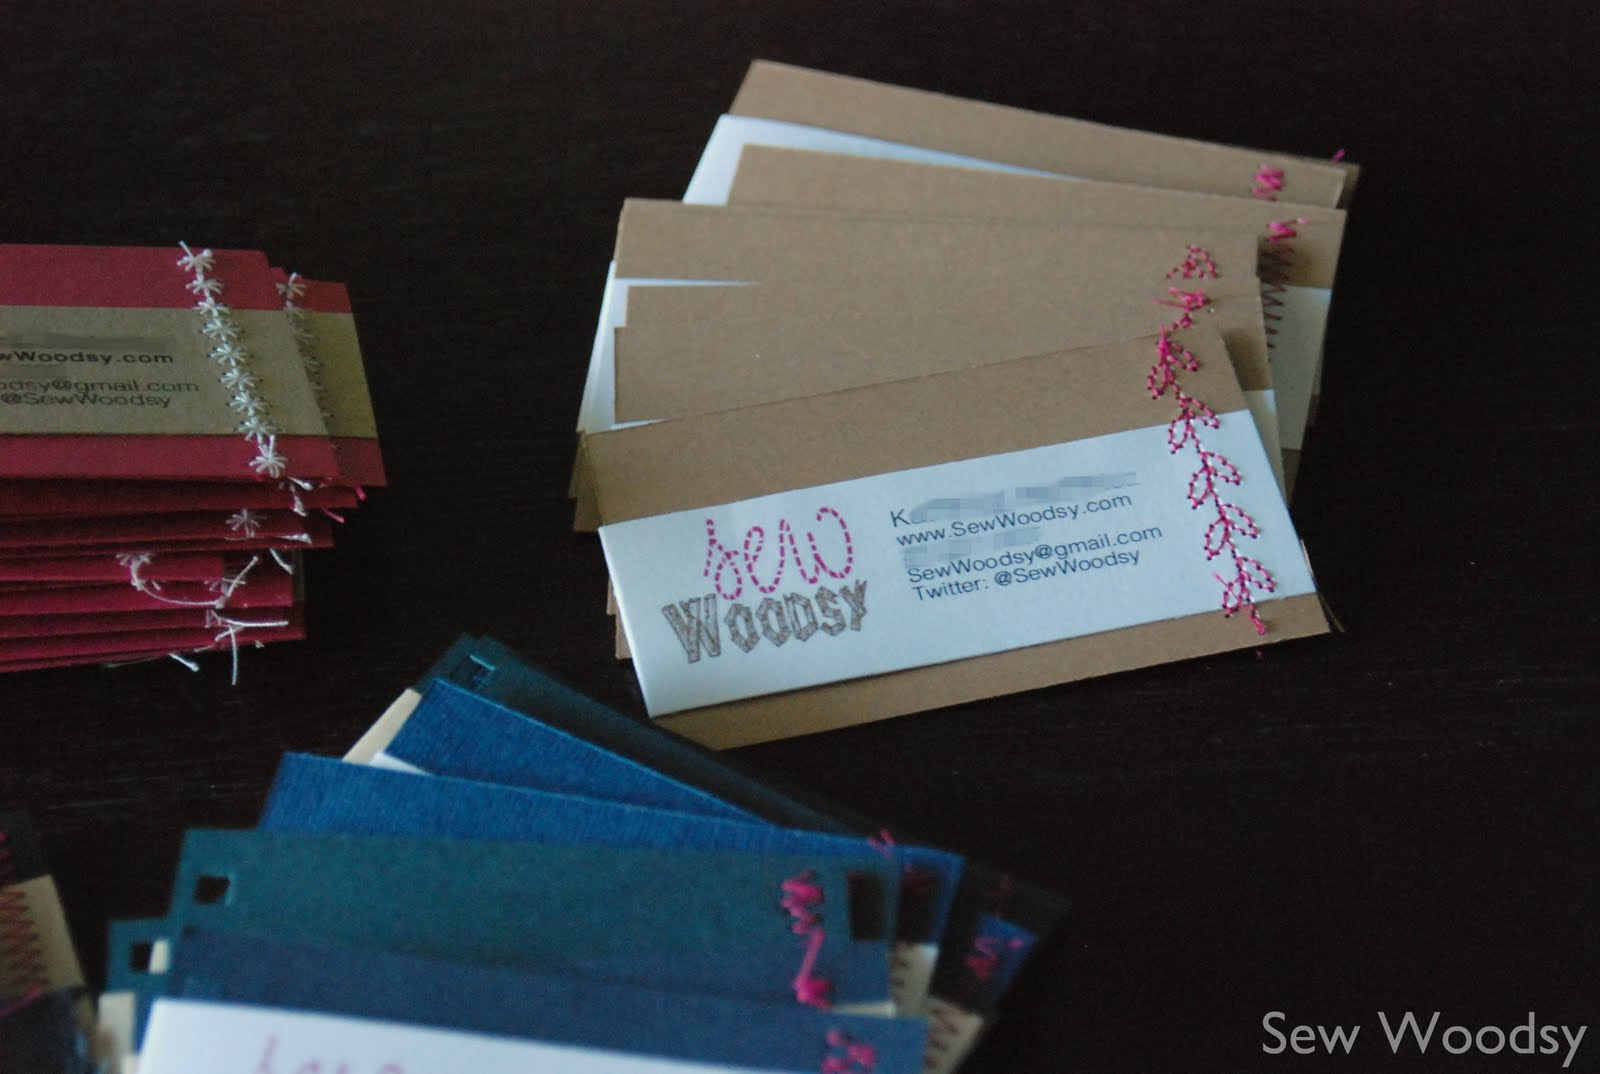 How to make homemade business cards best business cards create homemade business cards image collections card design and colourmoves